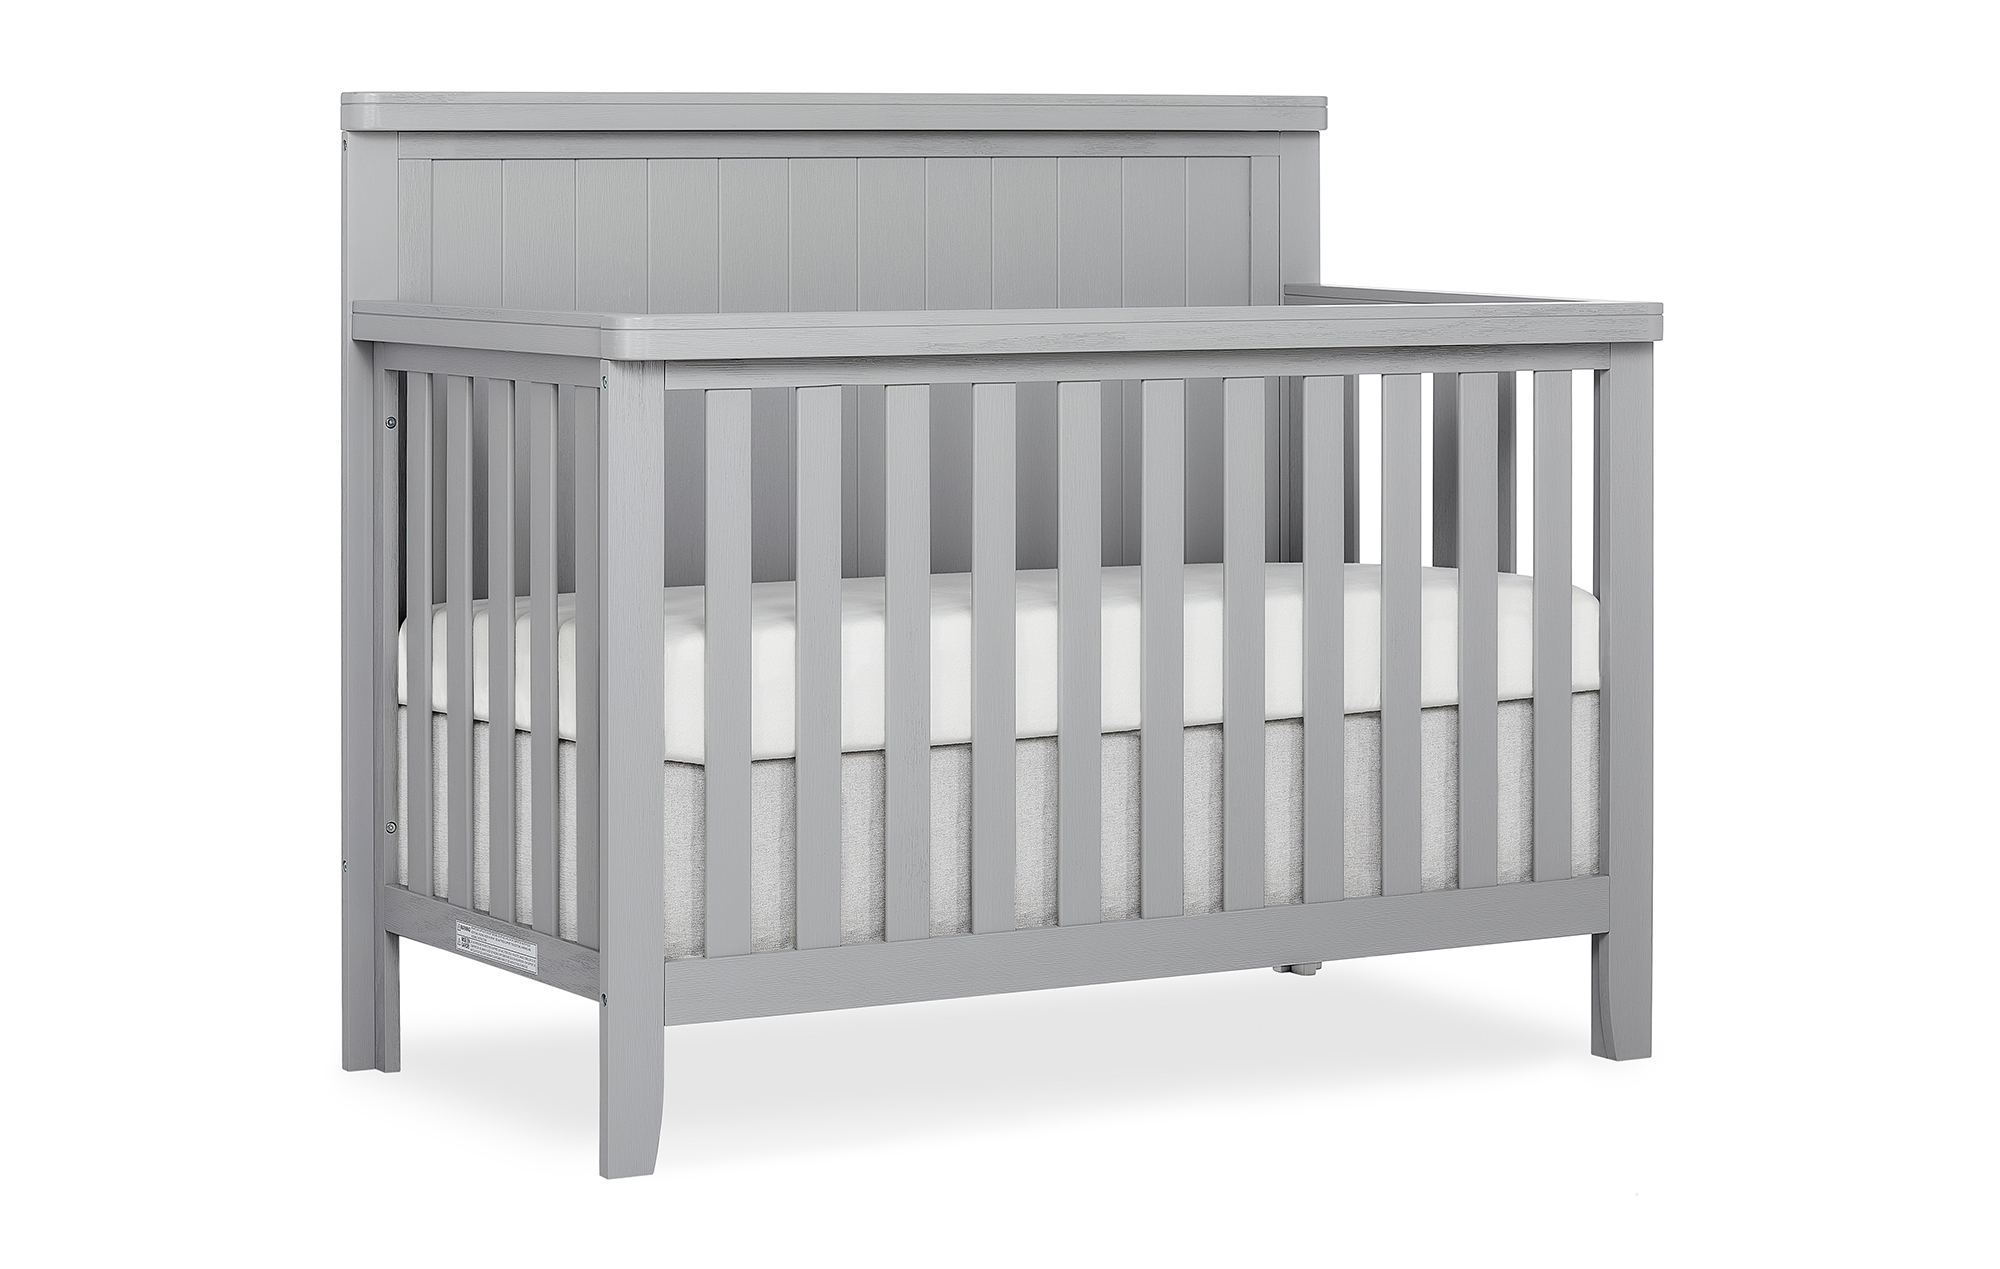 772BR-PG Redwood Crib Side